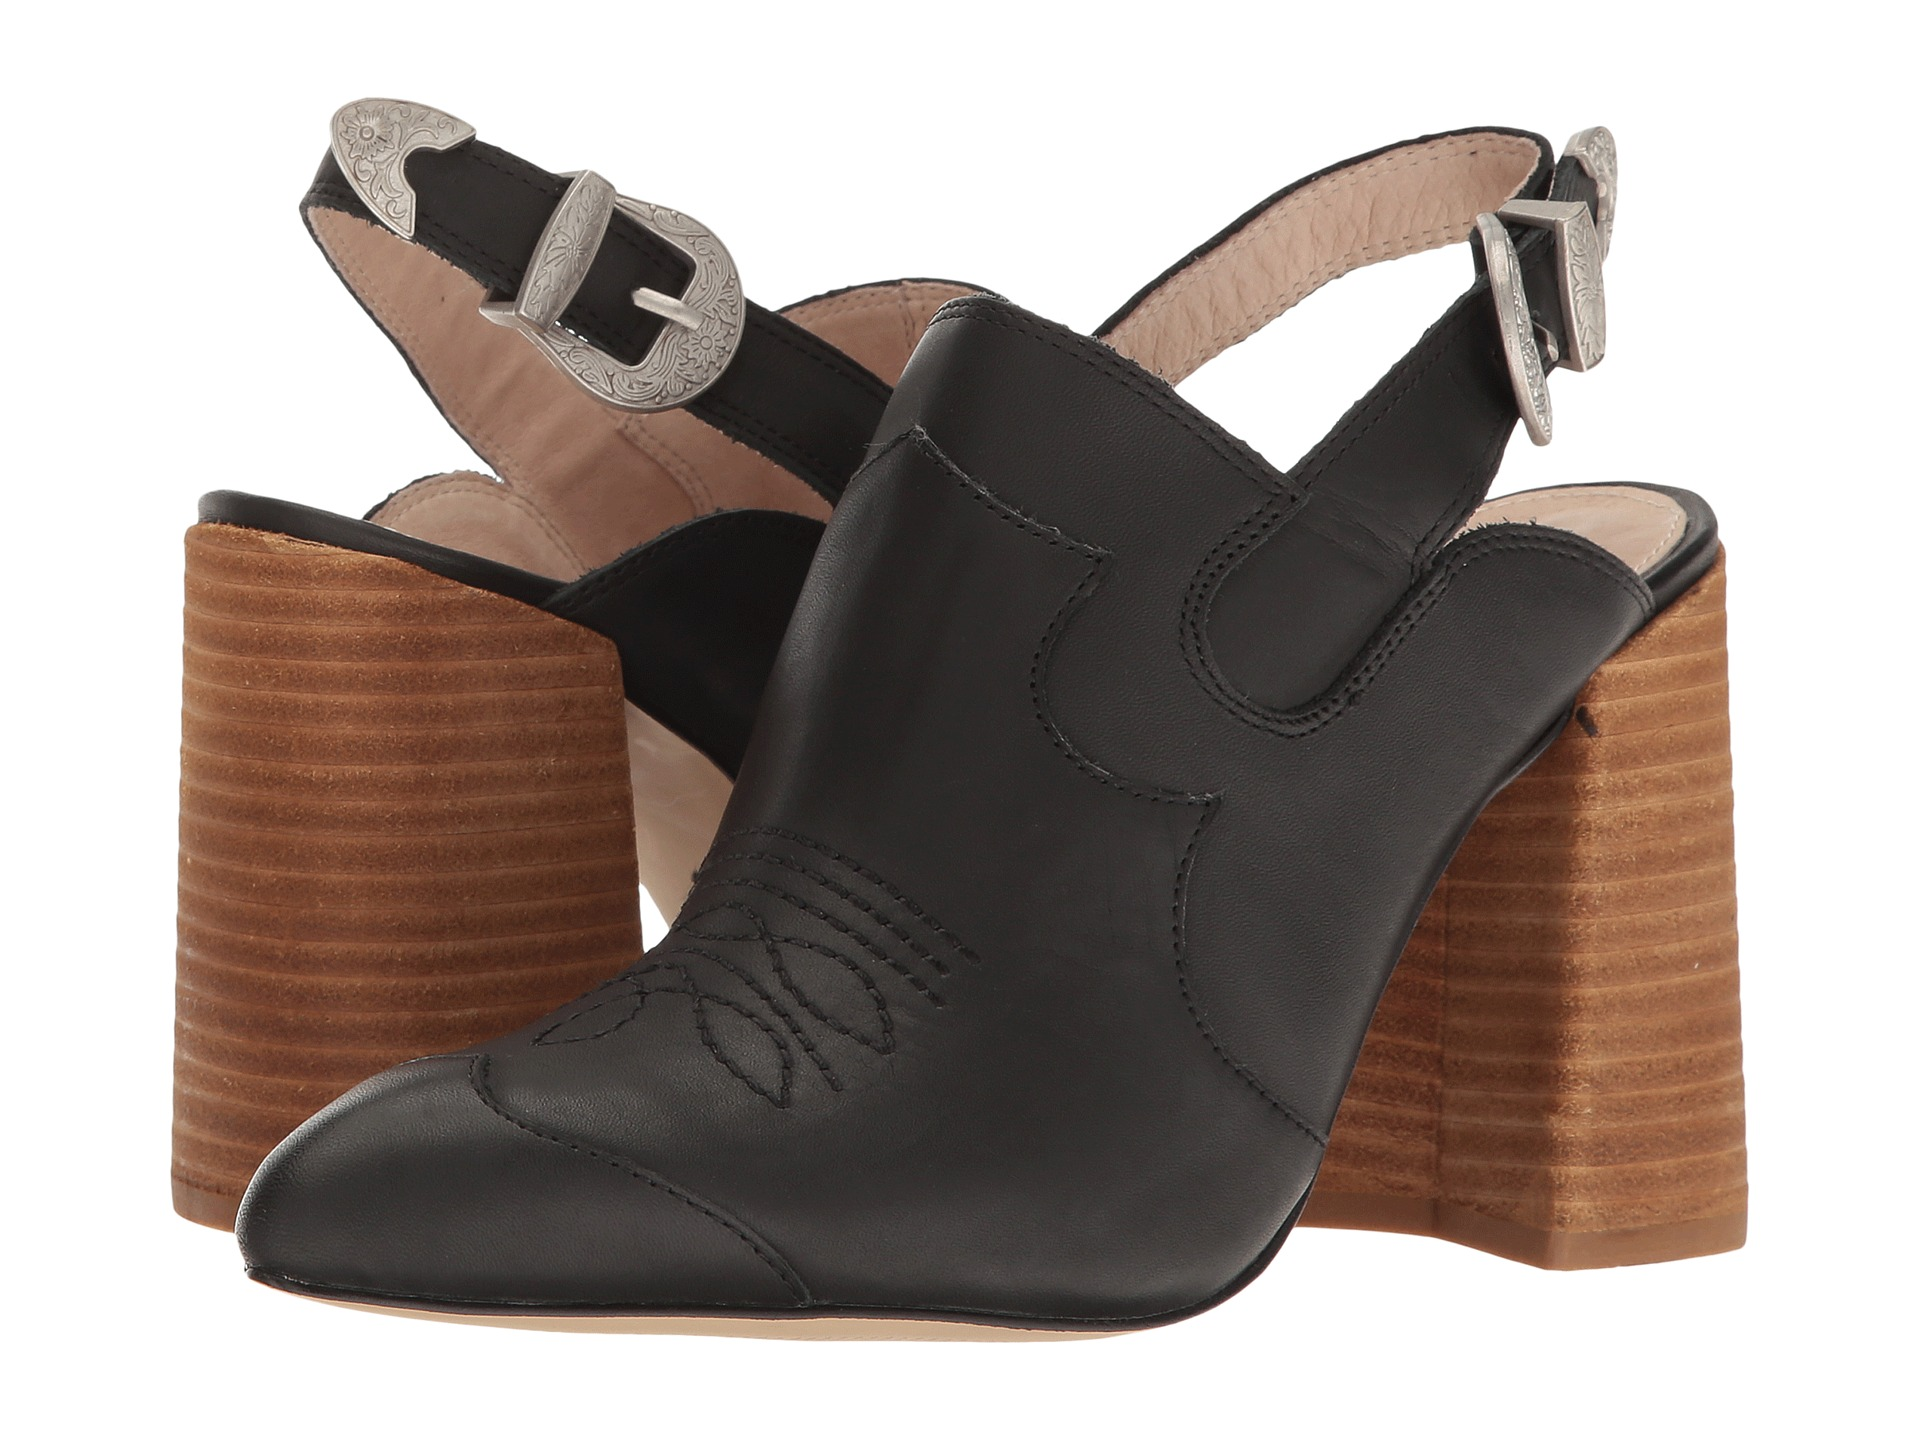 Shellys London Donna Black leather Pointed Toe Slingback Mule Bootie (40)